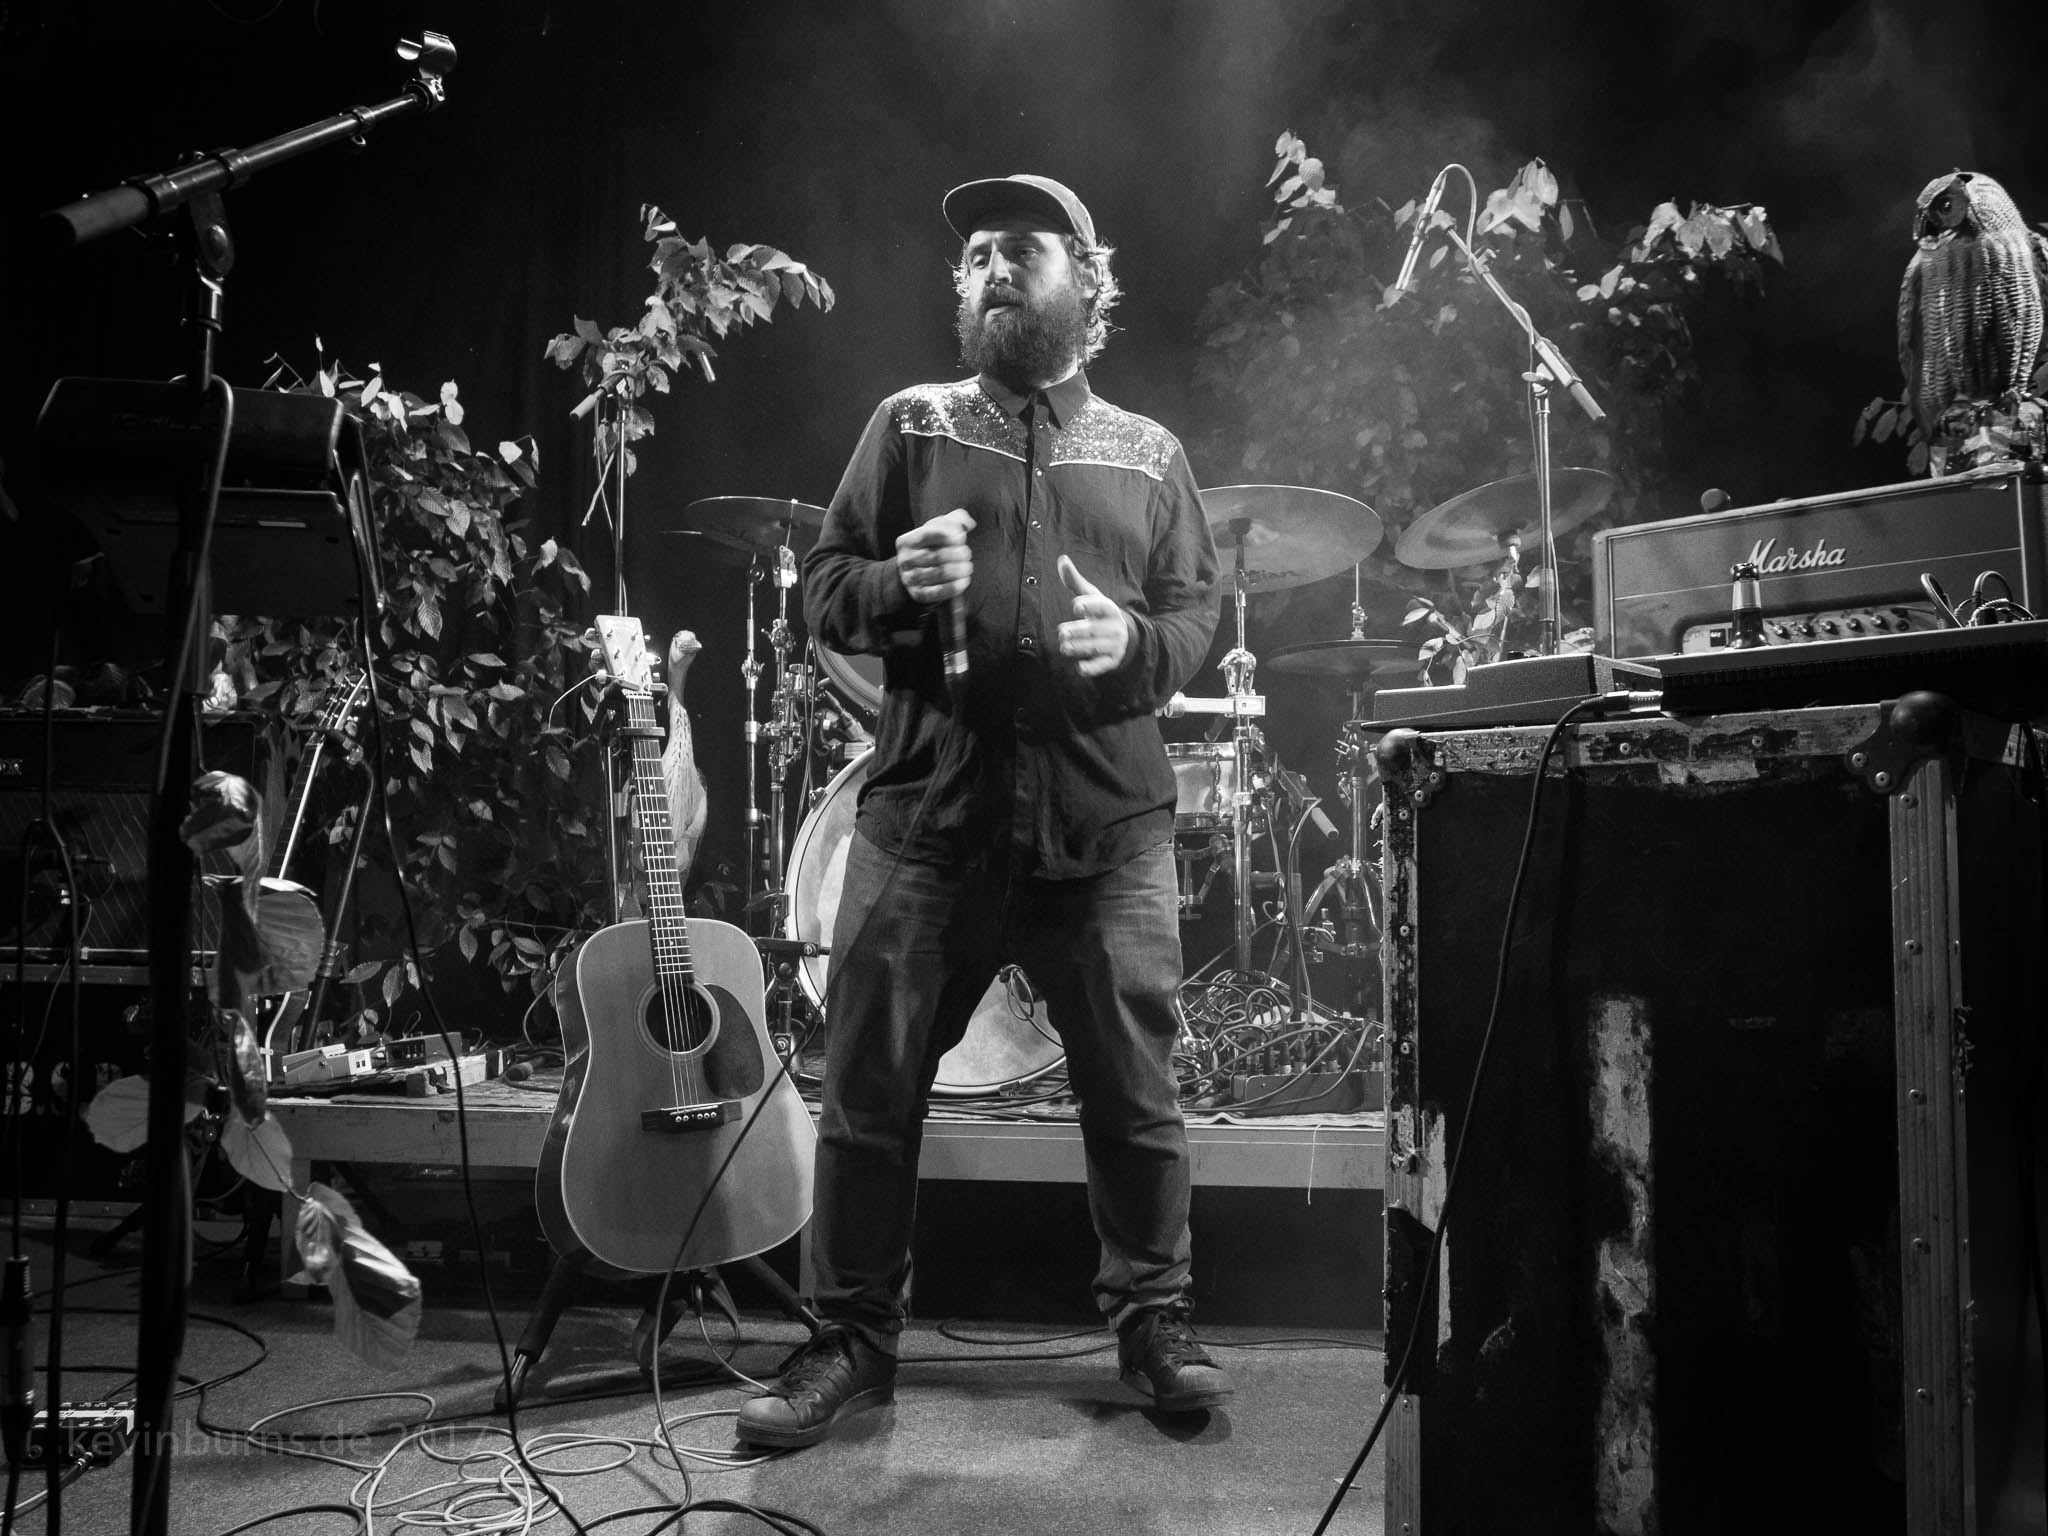 Pictish Trail - an interview in May 2017